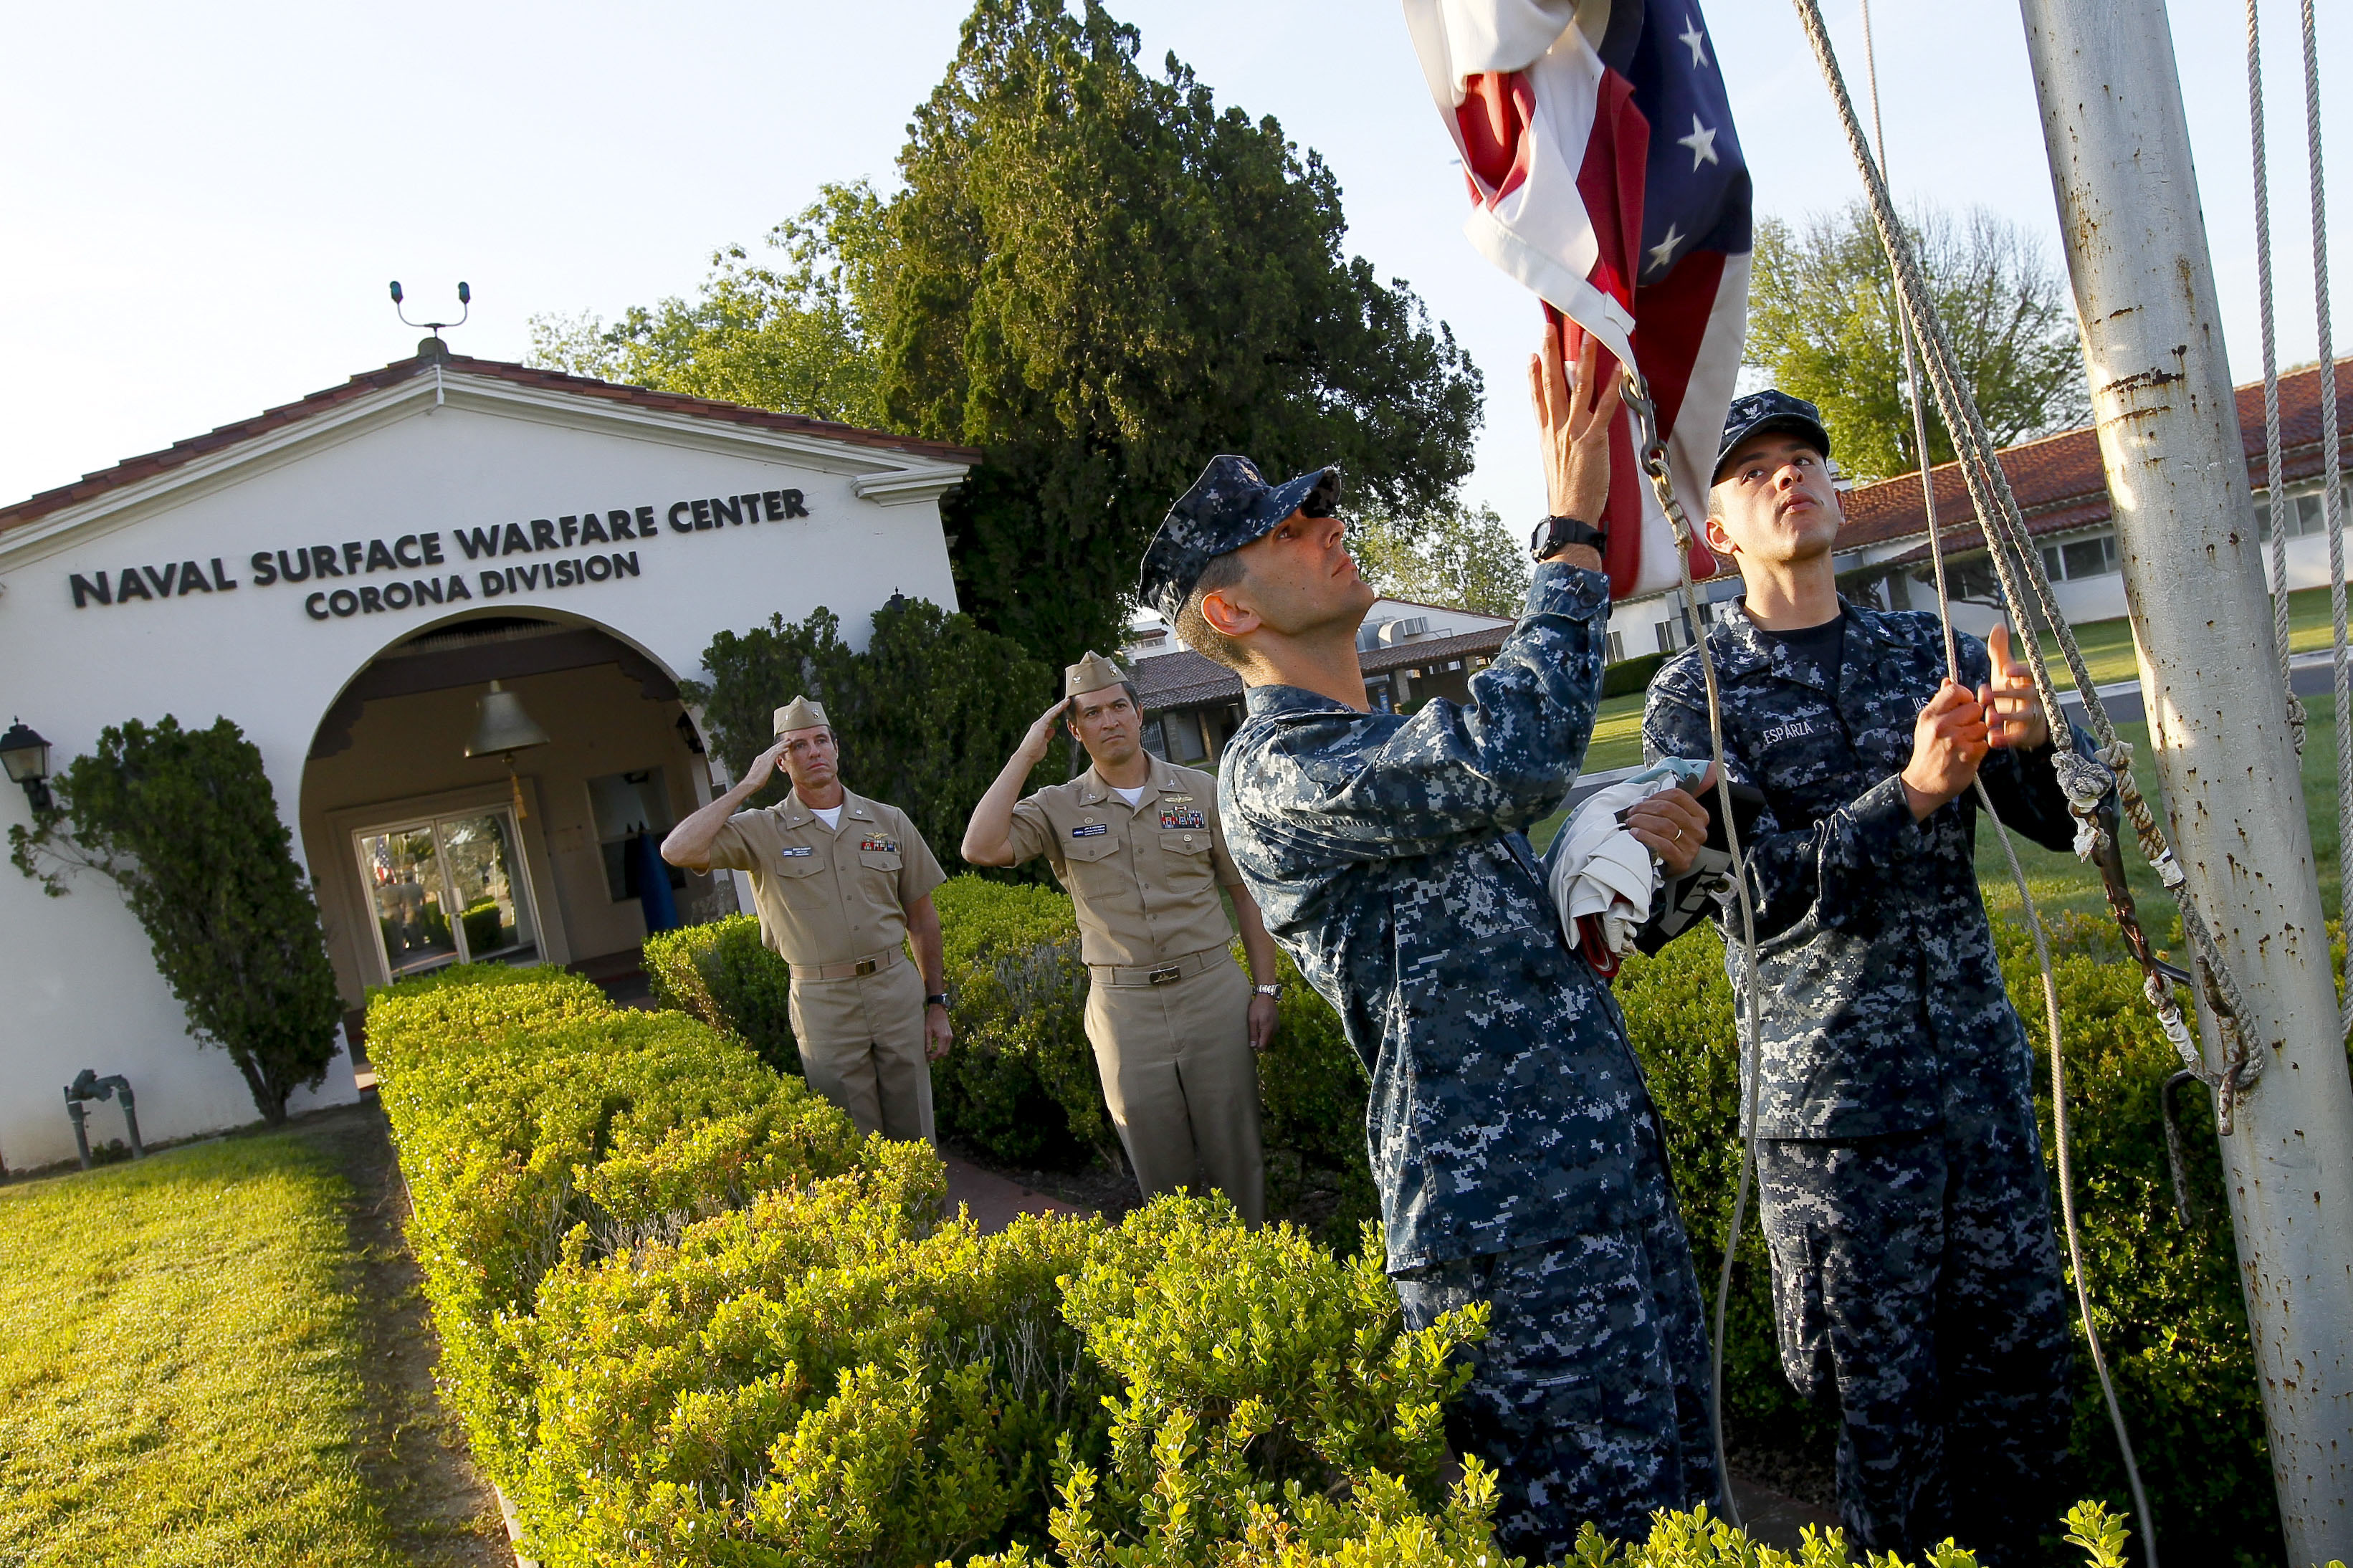 110315-N-HW977-066 NORCO, Calif. (March 15, 2011) Capt. Jay Kadowaki, second from left, commanding officer of Naval Surface Warfare Center (NSWC), Corona Division, and Cmdr. Breck DeGroff, chief of staff of NSWC, salute as Chief Master-at-Arms George LeTourneau, second from right, and Master-at-Arms 3rd Class Eugene Esparza raise the American flag during a morning colors ceremony to honor U.S. Army Cpl. Frank W. Buckles. Buckles, the last surviving American World War I veteran, died Feb. 27, 2011 and will be interred today at Arlington National Cemetery. (U.S. Navy photo by Greg Vojtko/Released)